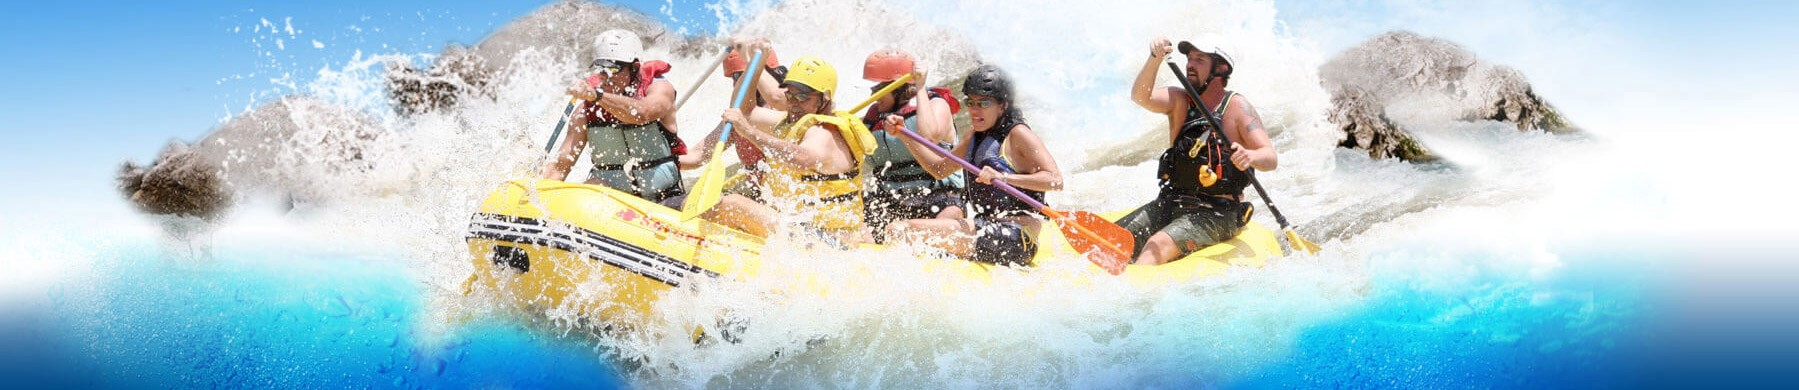 Saturn Whitewater Rafts For Sale - White Water Catarafts